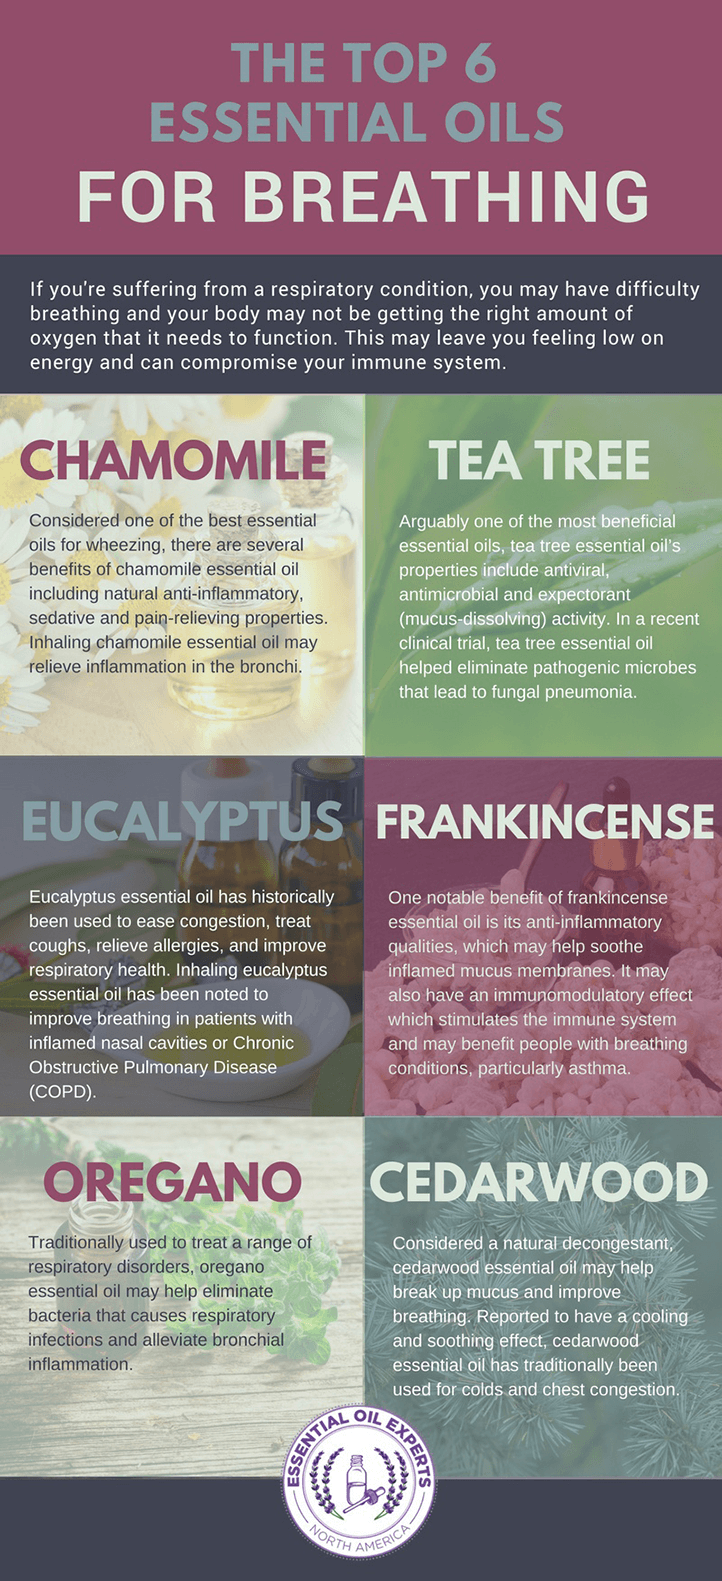 Breathe easy essential oil remedies.